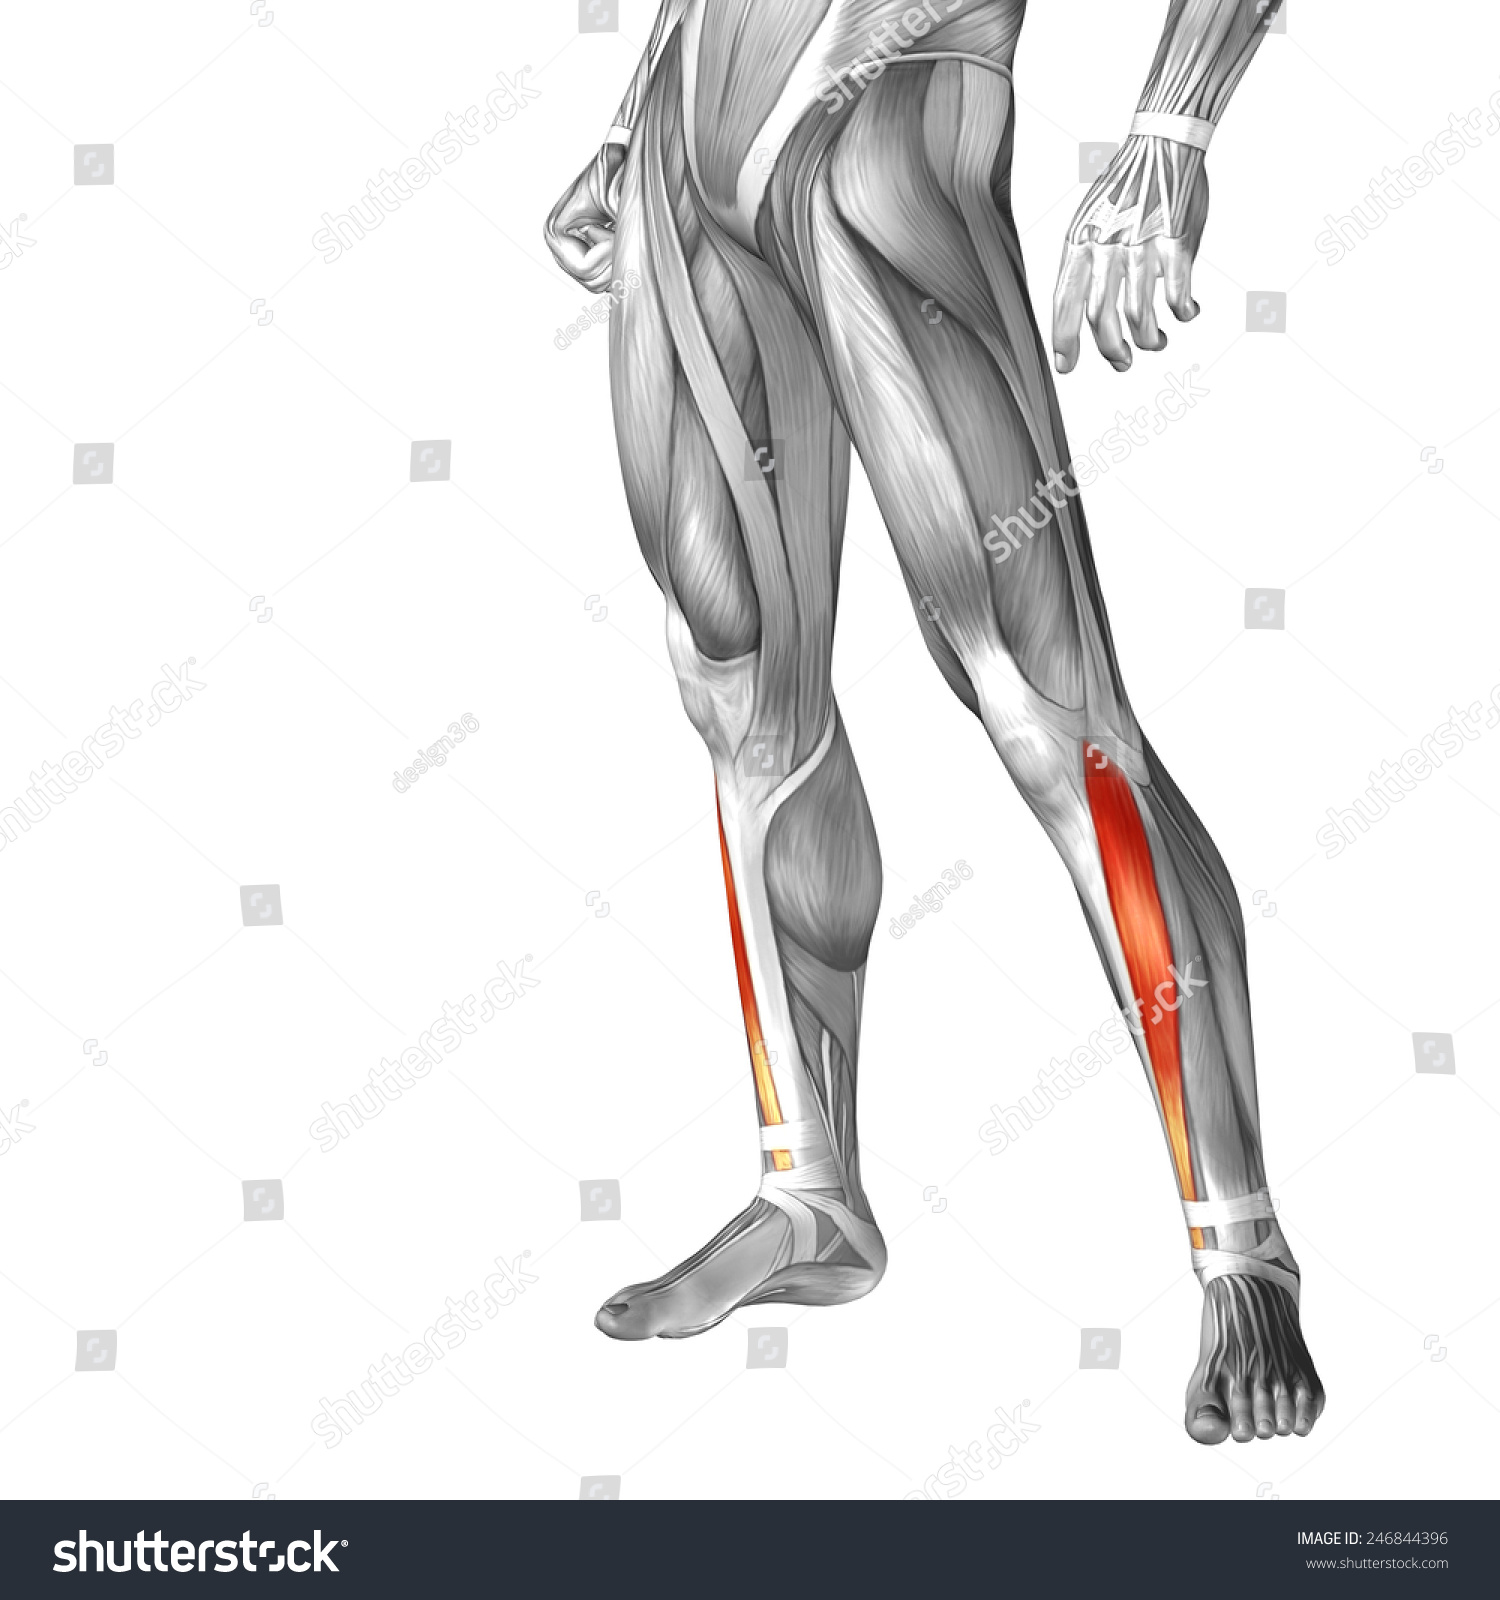 Royalty Free Stock Illustration Of Conceptual 3 D Tibialis Anterior